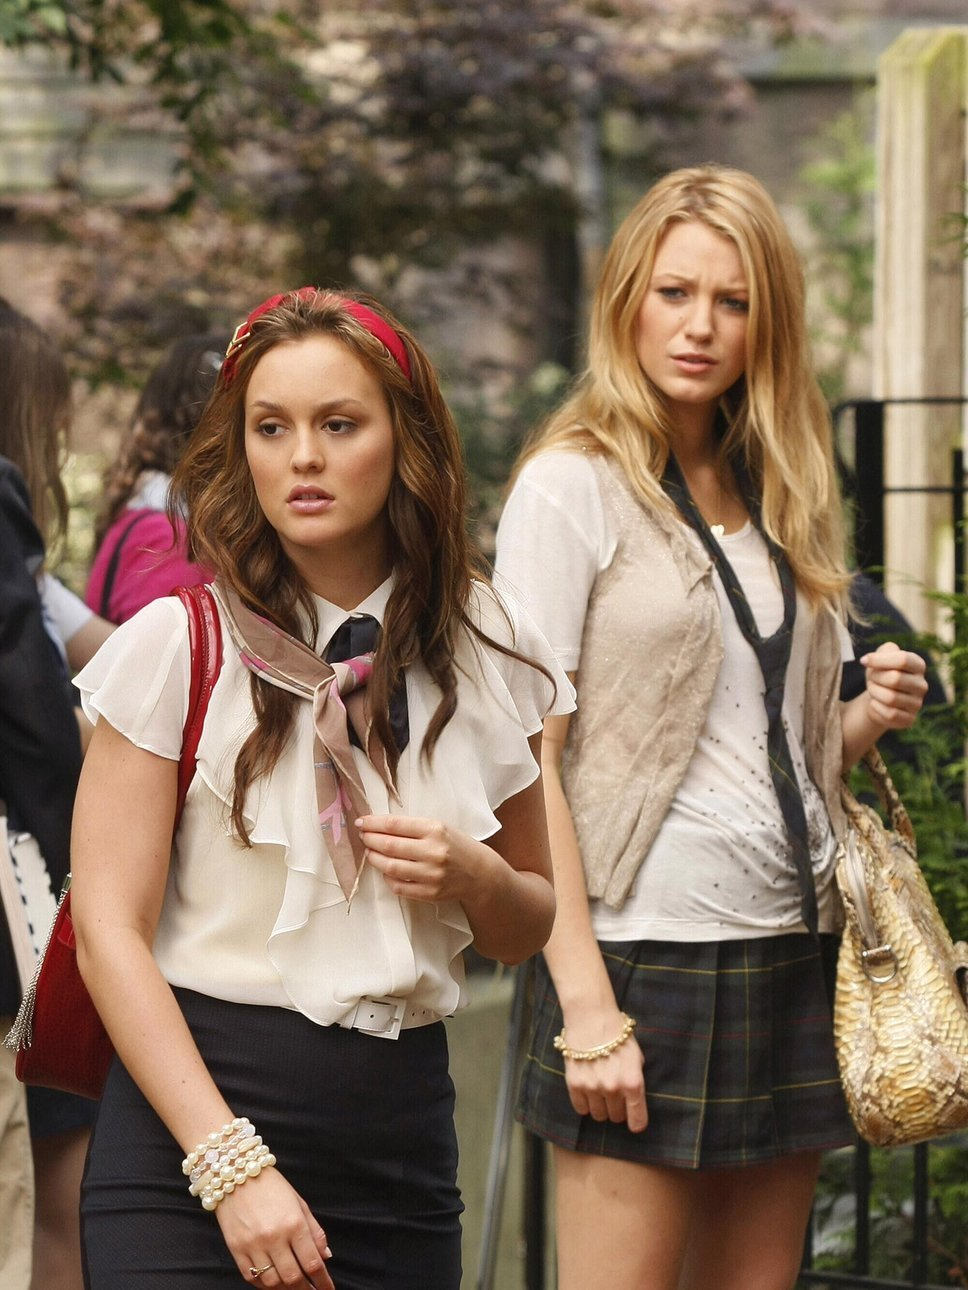 'Gossip Girl' is being rebooted